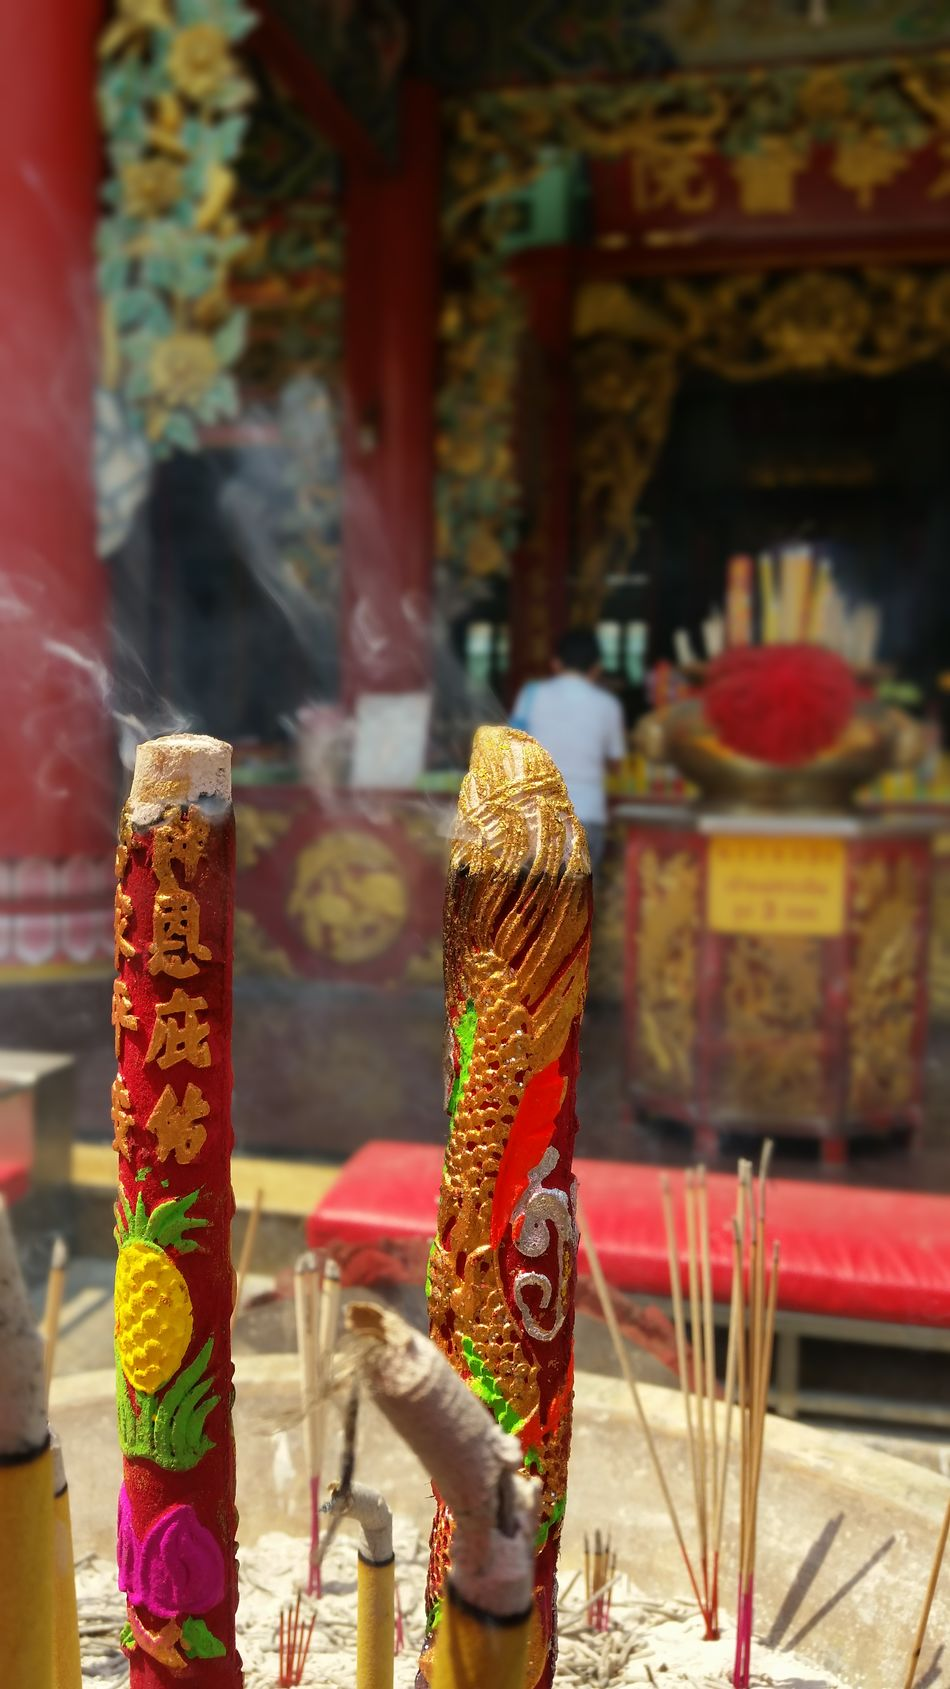 Red Colorful Incense Incense Sticks Burning Chinese Temple Make Merit Make A Wish China Town Place Of Worship Multi Colored Outdoors Tradition Noedit Nofilter Samsungphotography มูลนิธิเทียนฟ้า